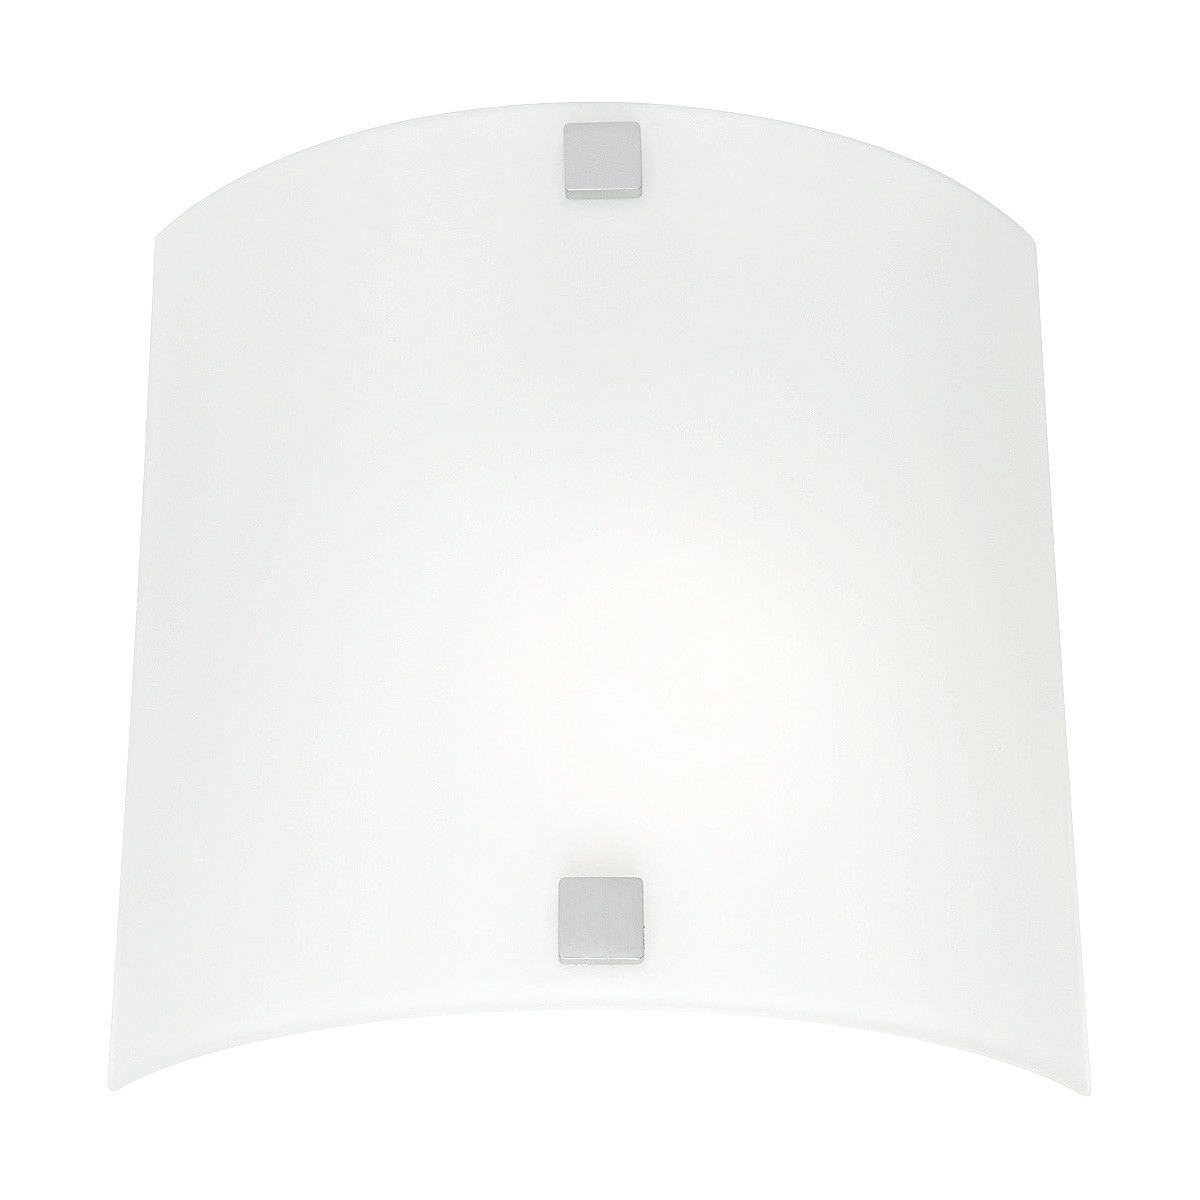 Neo Wall Sconce